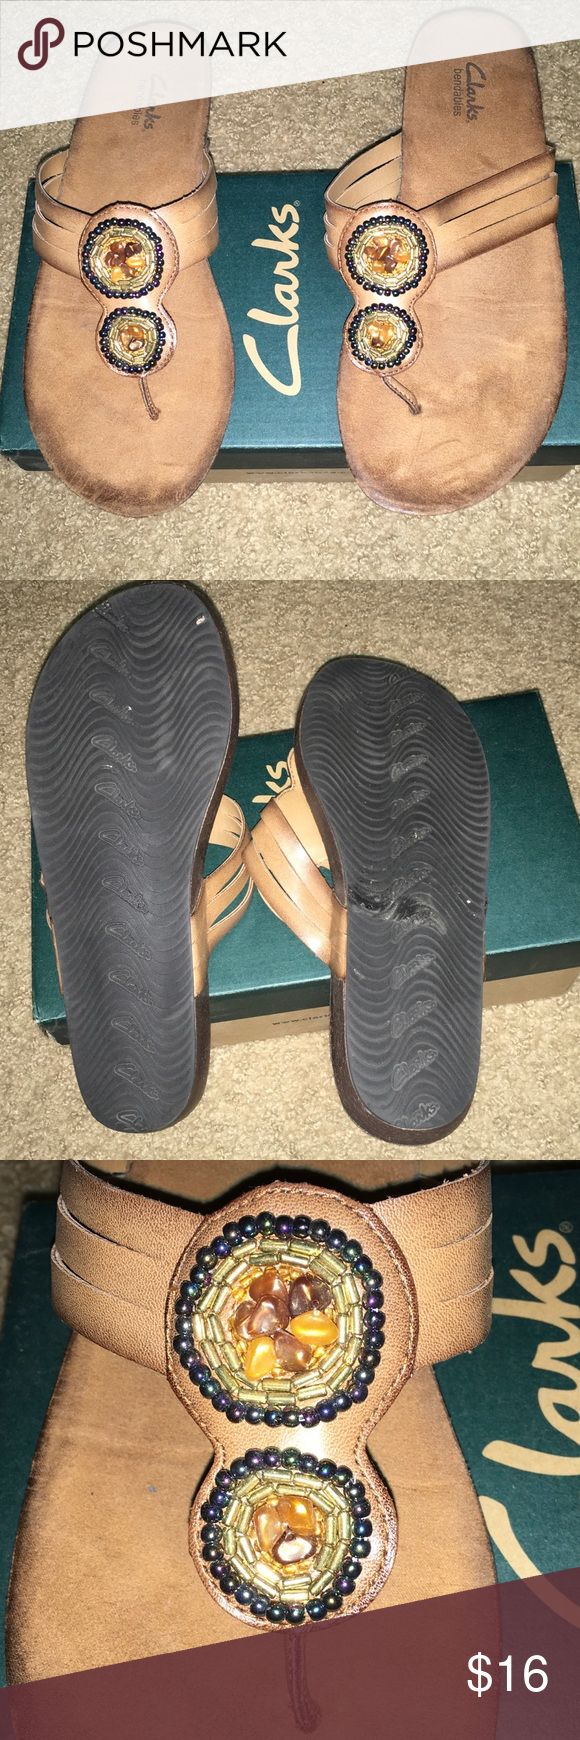 Clarks Sandals Clarks Bendables brown sandals with embellishments.   Worn only once!    ****LOWEST PRICE*** Clarks Shoes Sandals